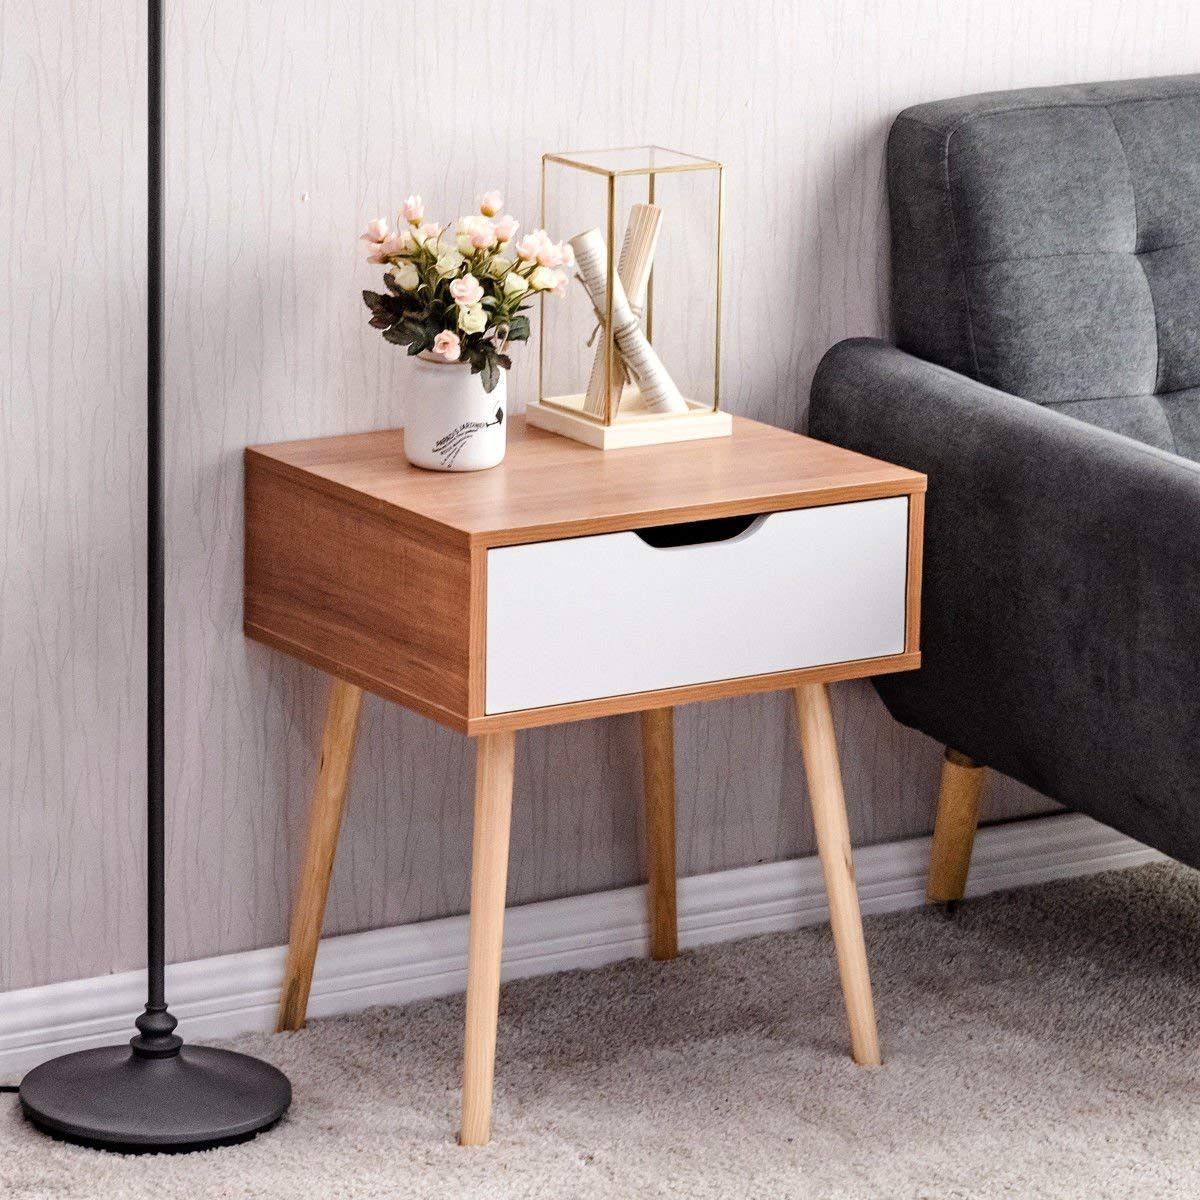 Set of 2 End Bedside Table Solid Wood Legs Nightstand with White Storage Drawer